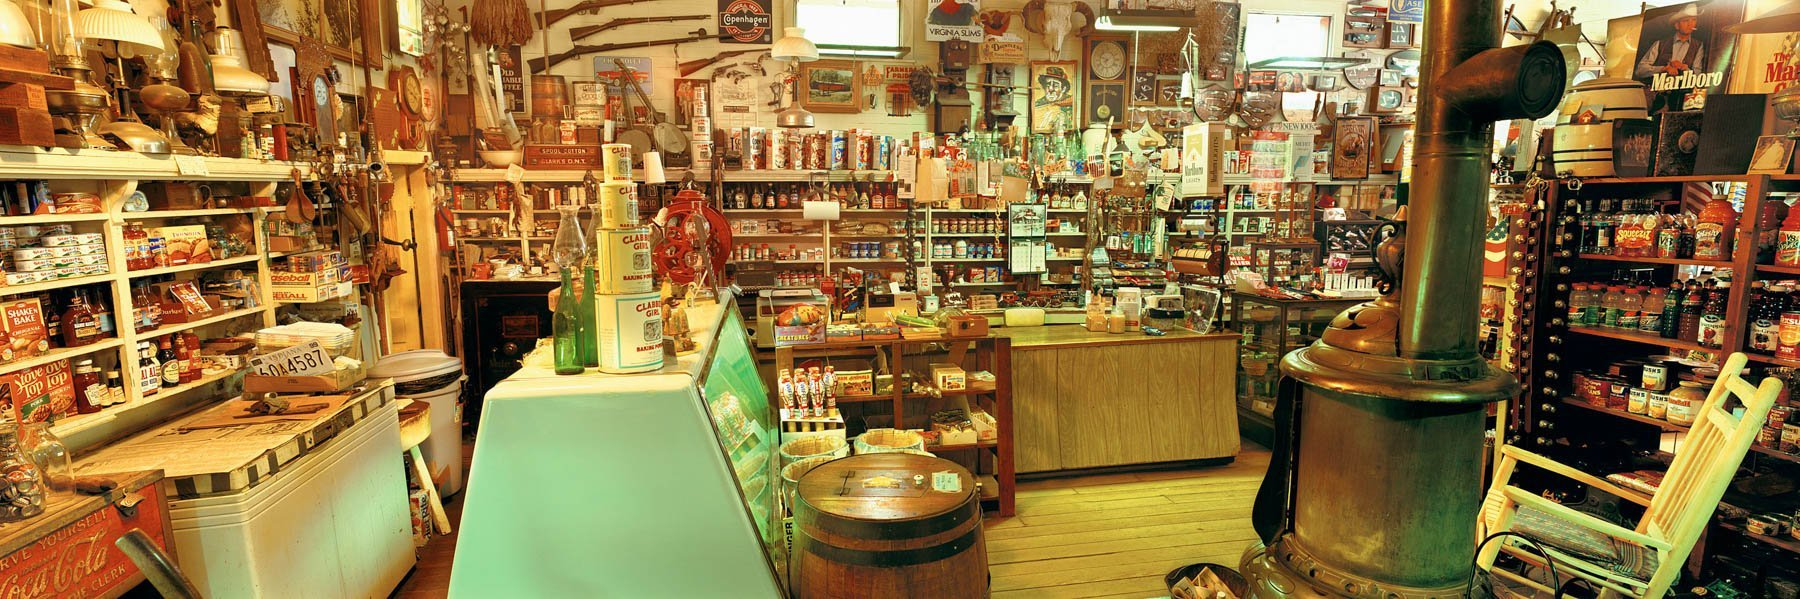 Shelves lined with a vast array of goods in a general store in Indiana, USA.